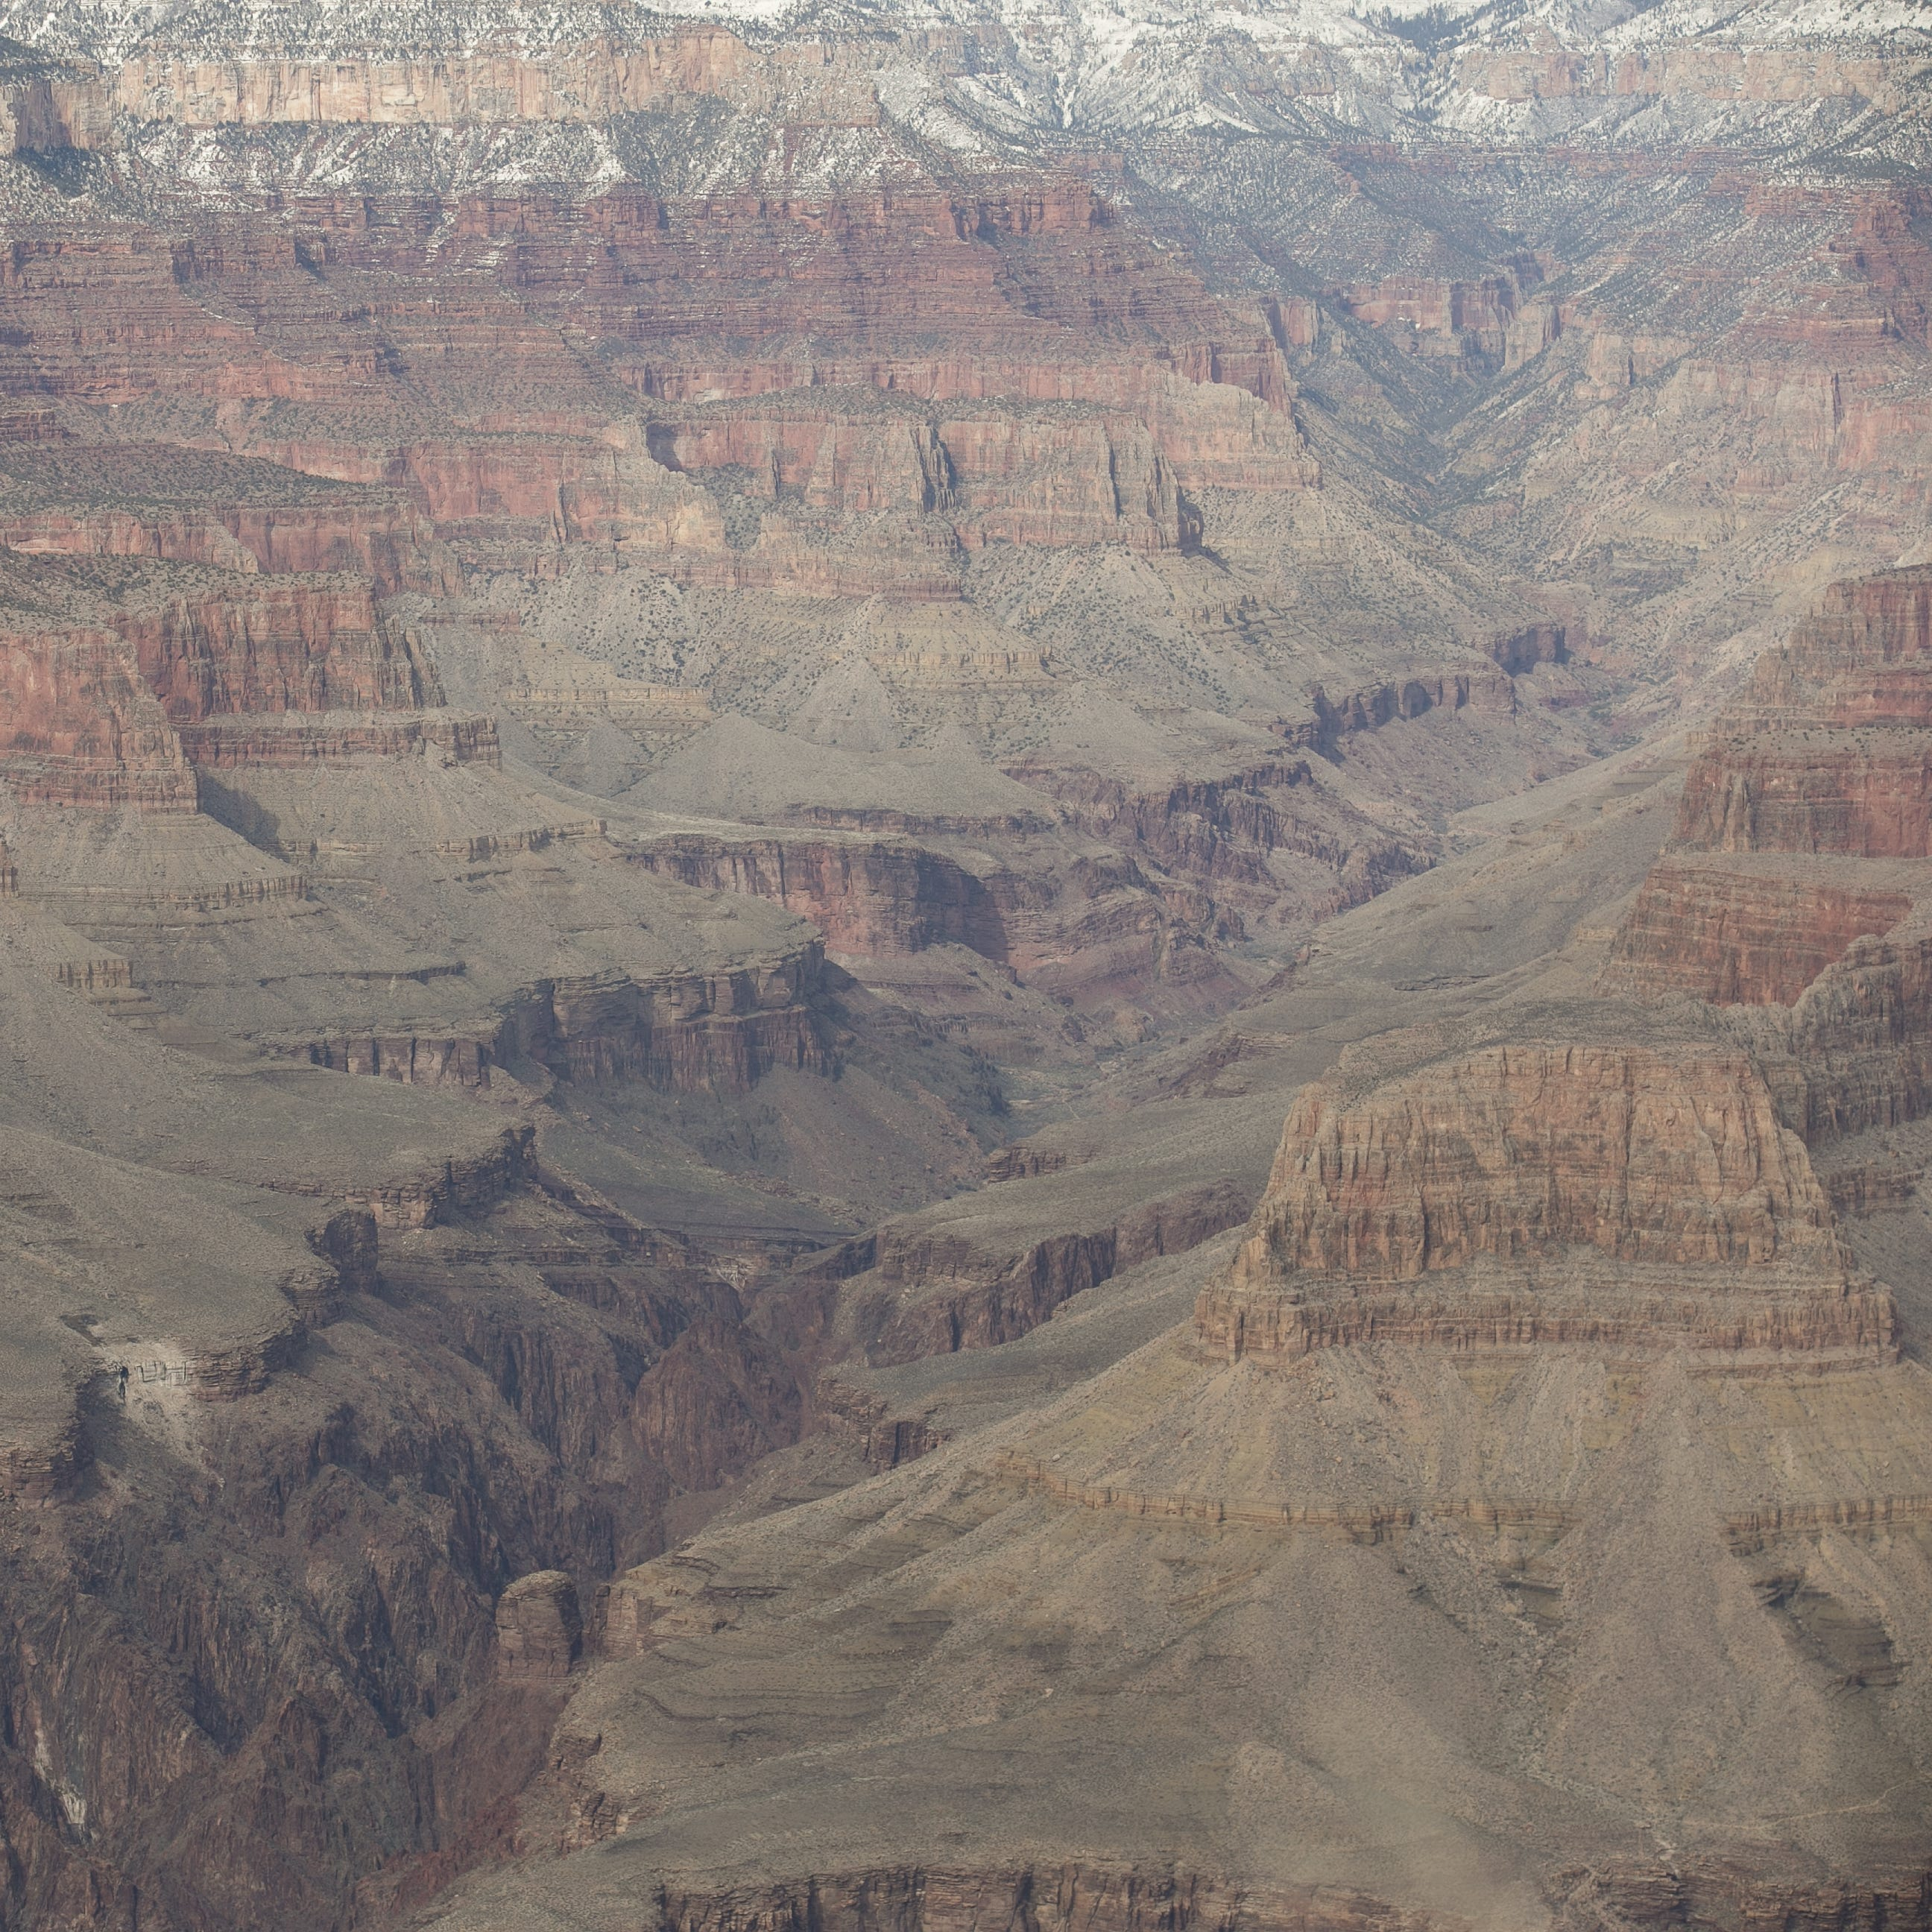 Second death confirmed at Grand Canyon this week